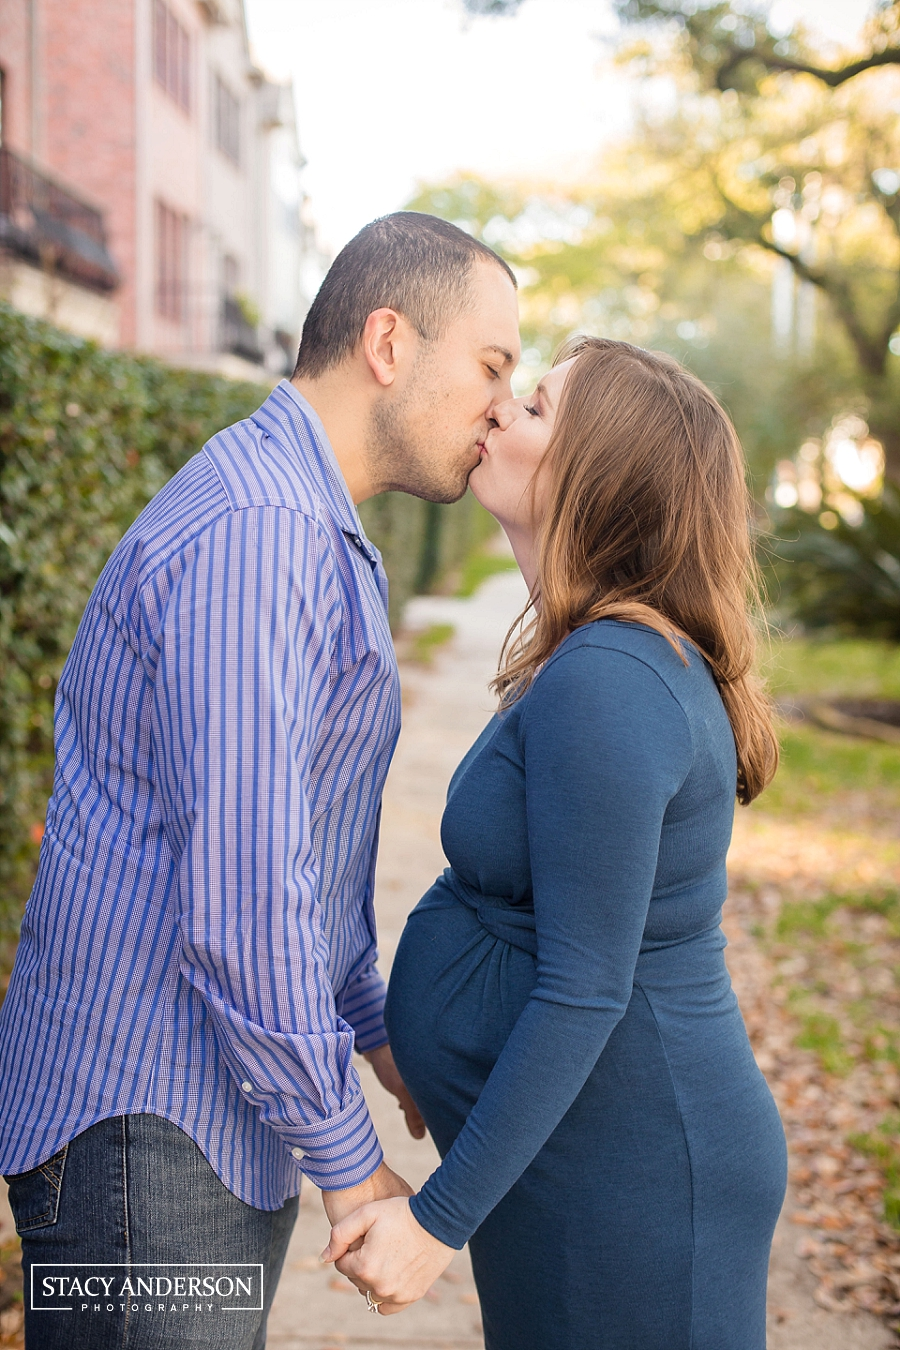 Stacy Anderson Photography Houston Maternity Photographer_1178